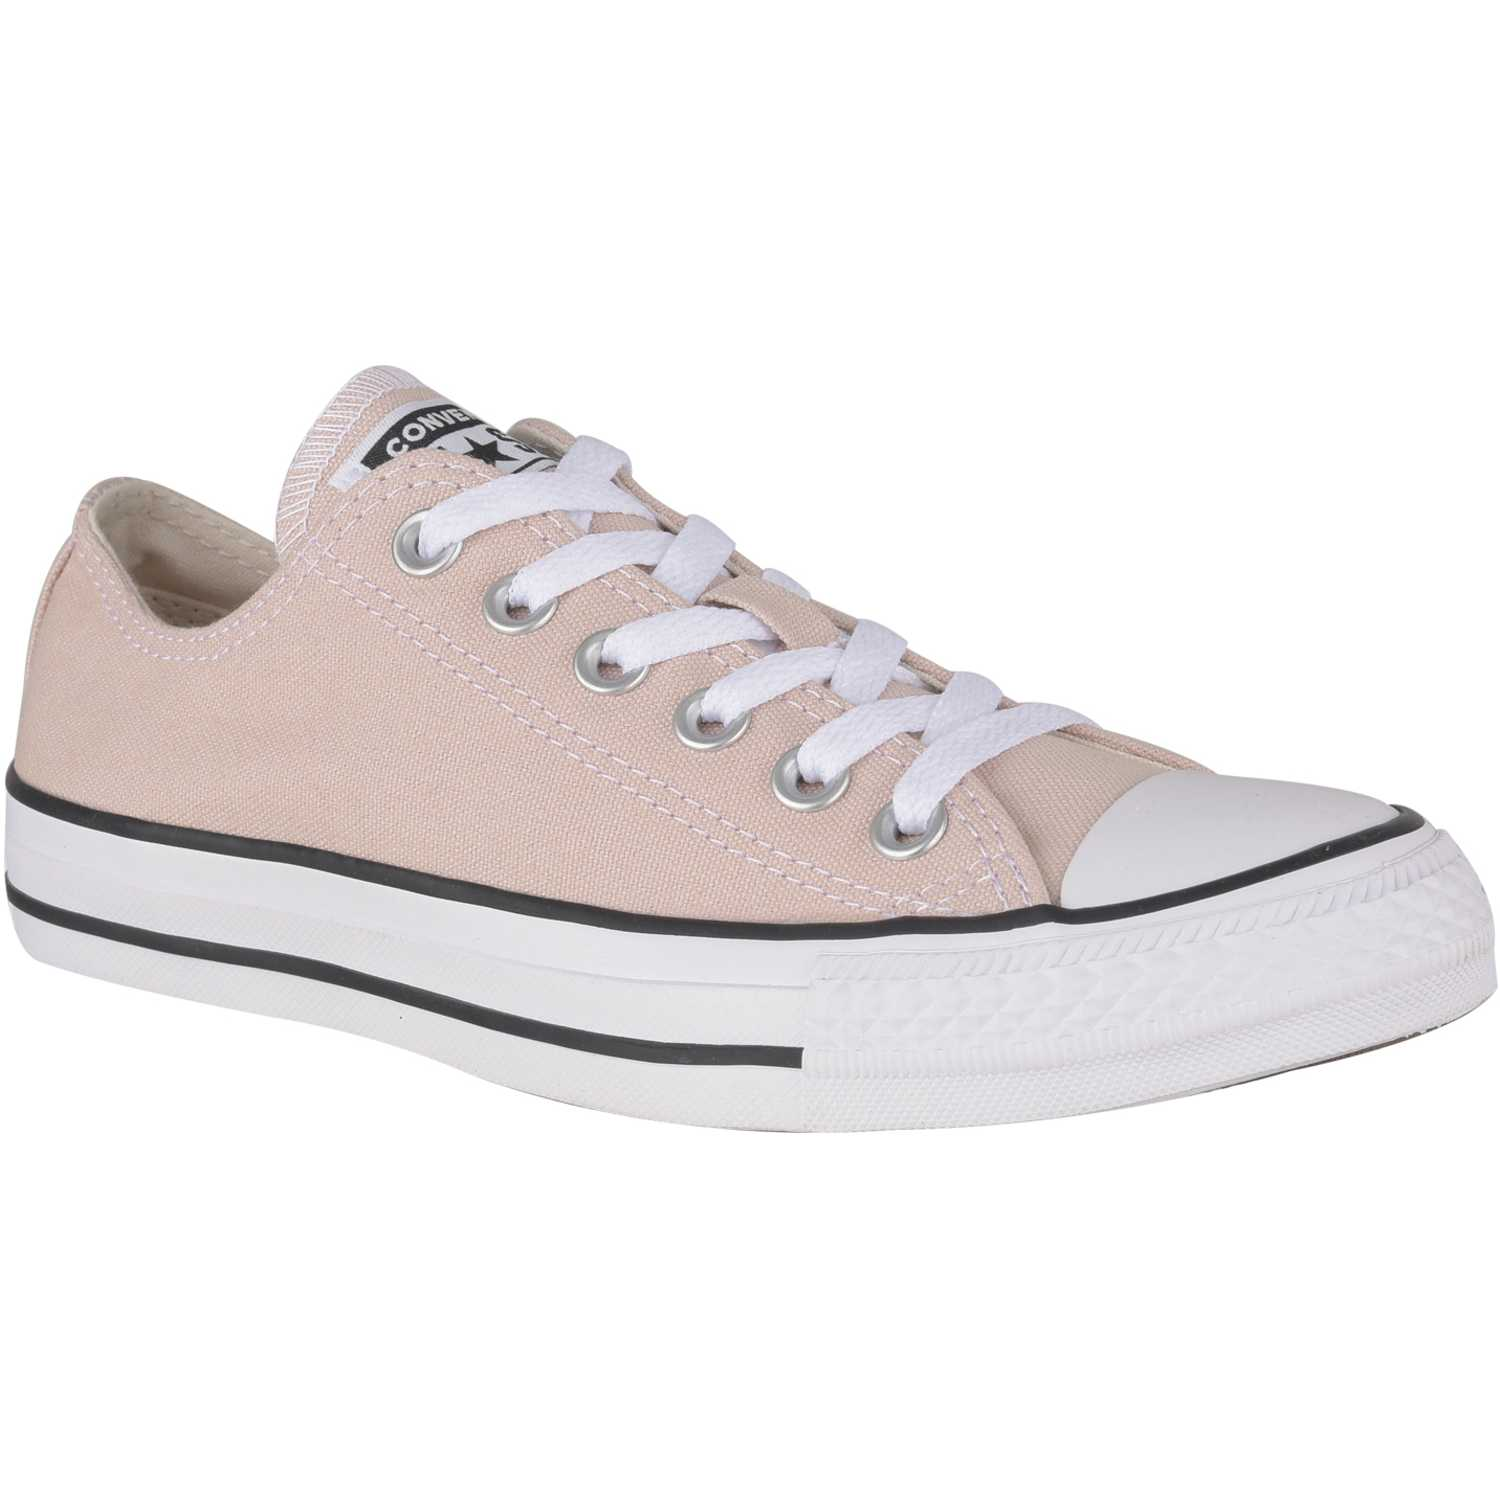 Converse chuck taylor all star seasonal ox Melon / blanco Walking